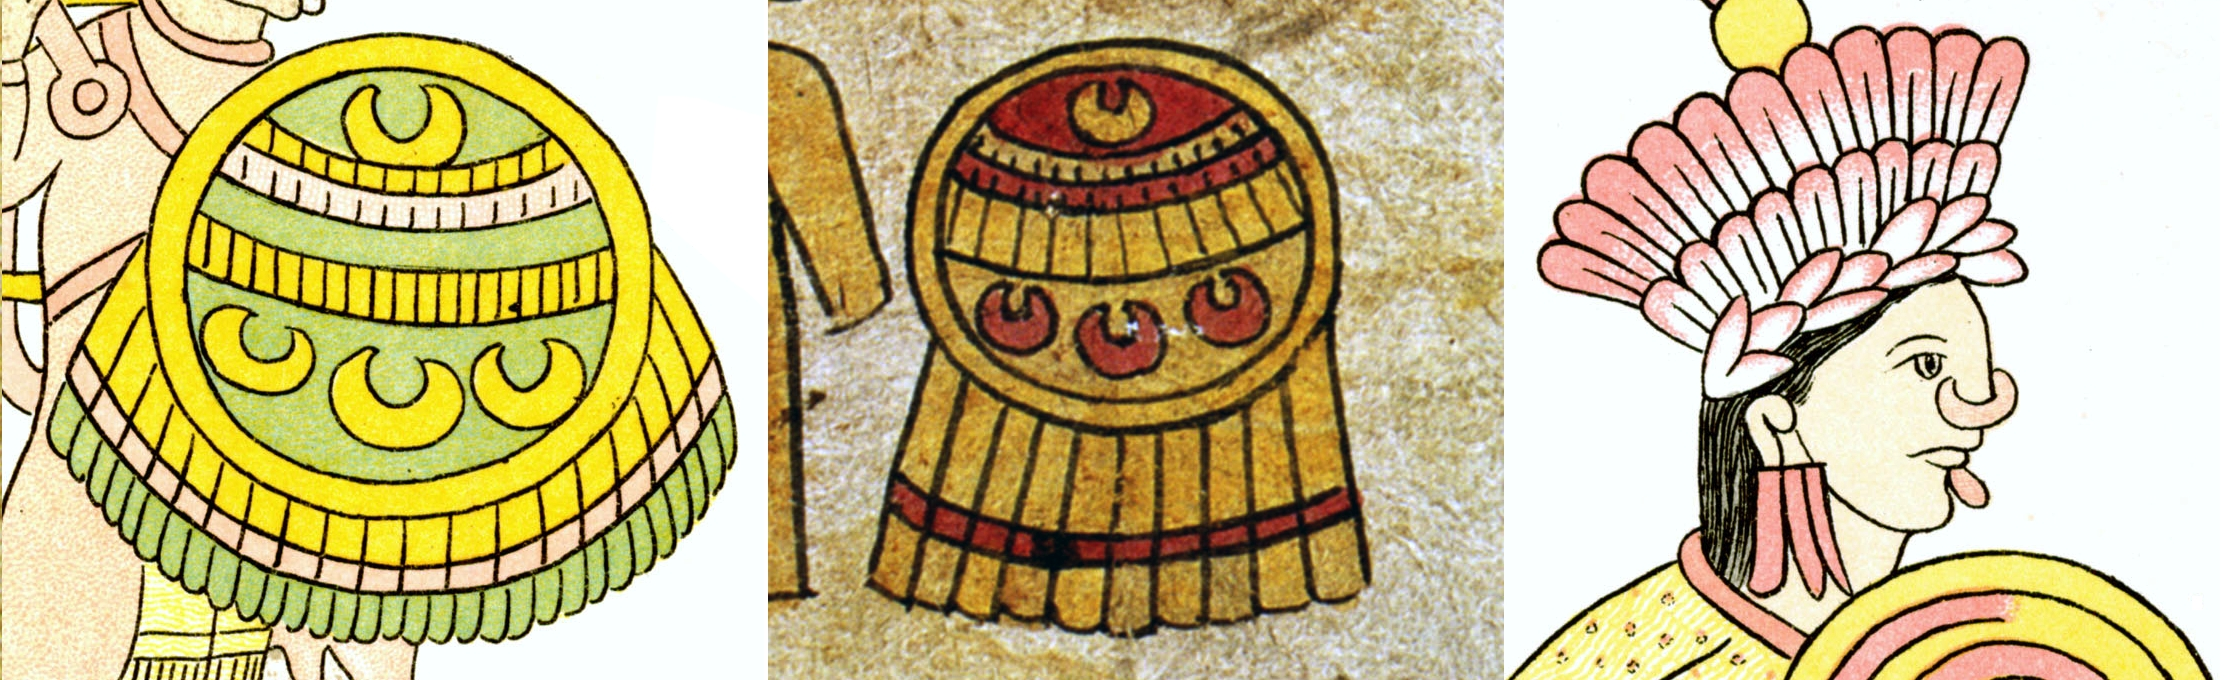 FIGURE 28. The crescent-shaped Huaxtec nose ornament, from a shield in Cell 68 of the Lienzo de Tlaxcala (left), a shield on folio 14r of the Matrícula de Tributos (center), and worn by a warrior in Cell 61 of the Lienzo de Tlaxcala (right).